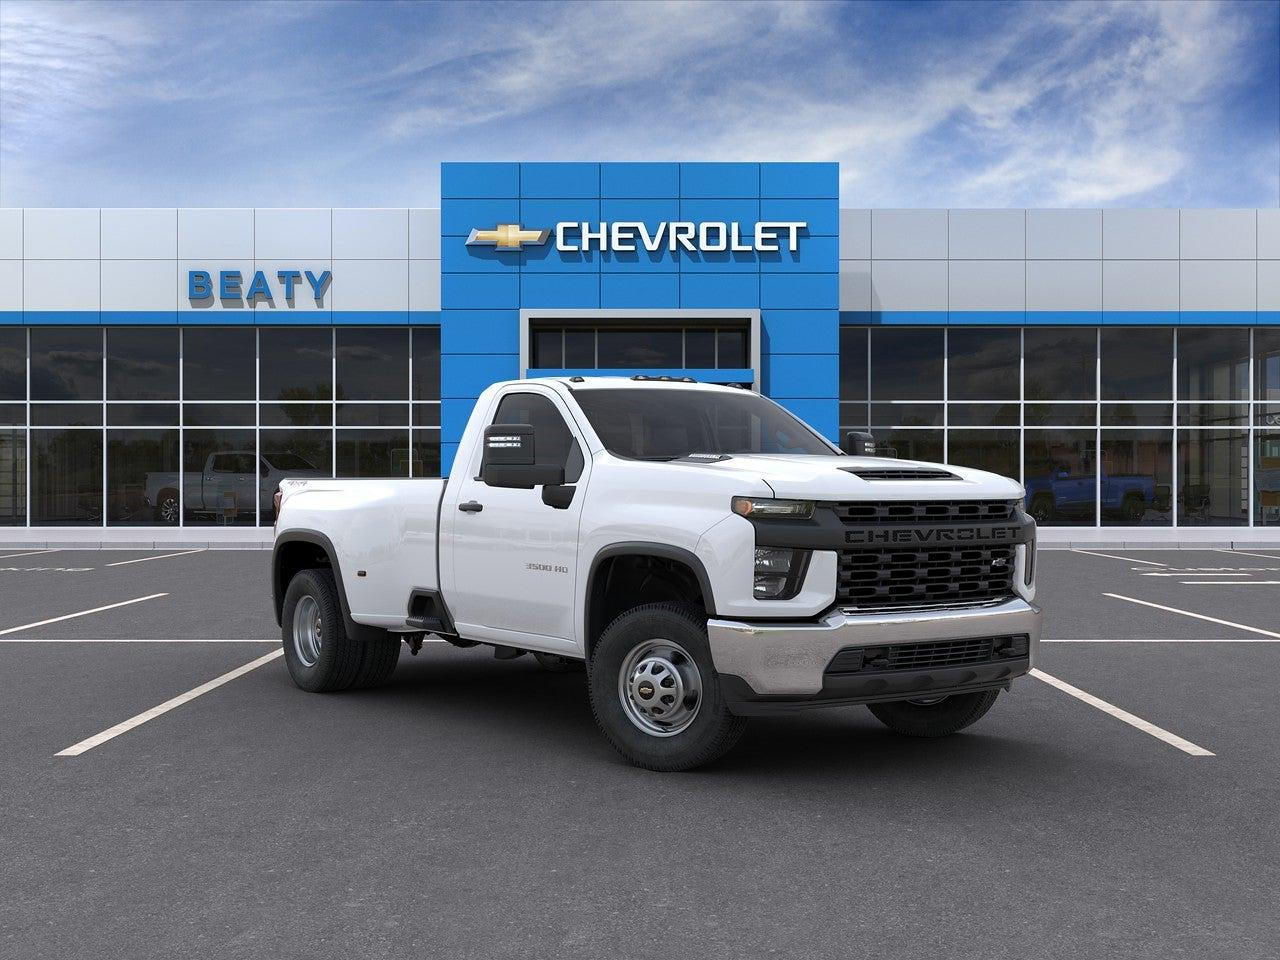 2020 Chevrolet Silverado 3500 Regular Cab 4x4, CM Truck Beds Platform Body #23022 - photo 1